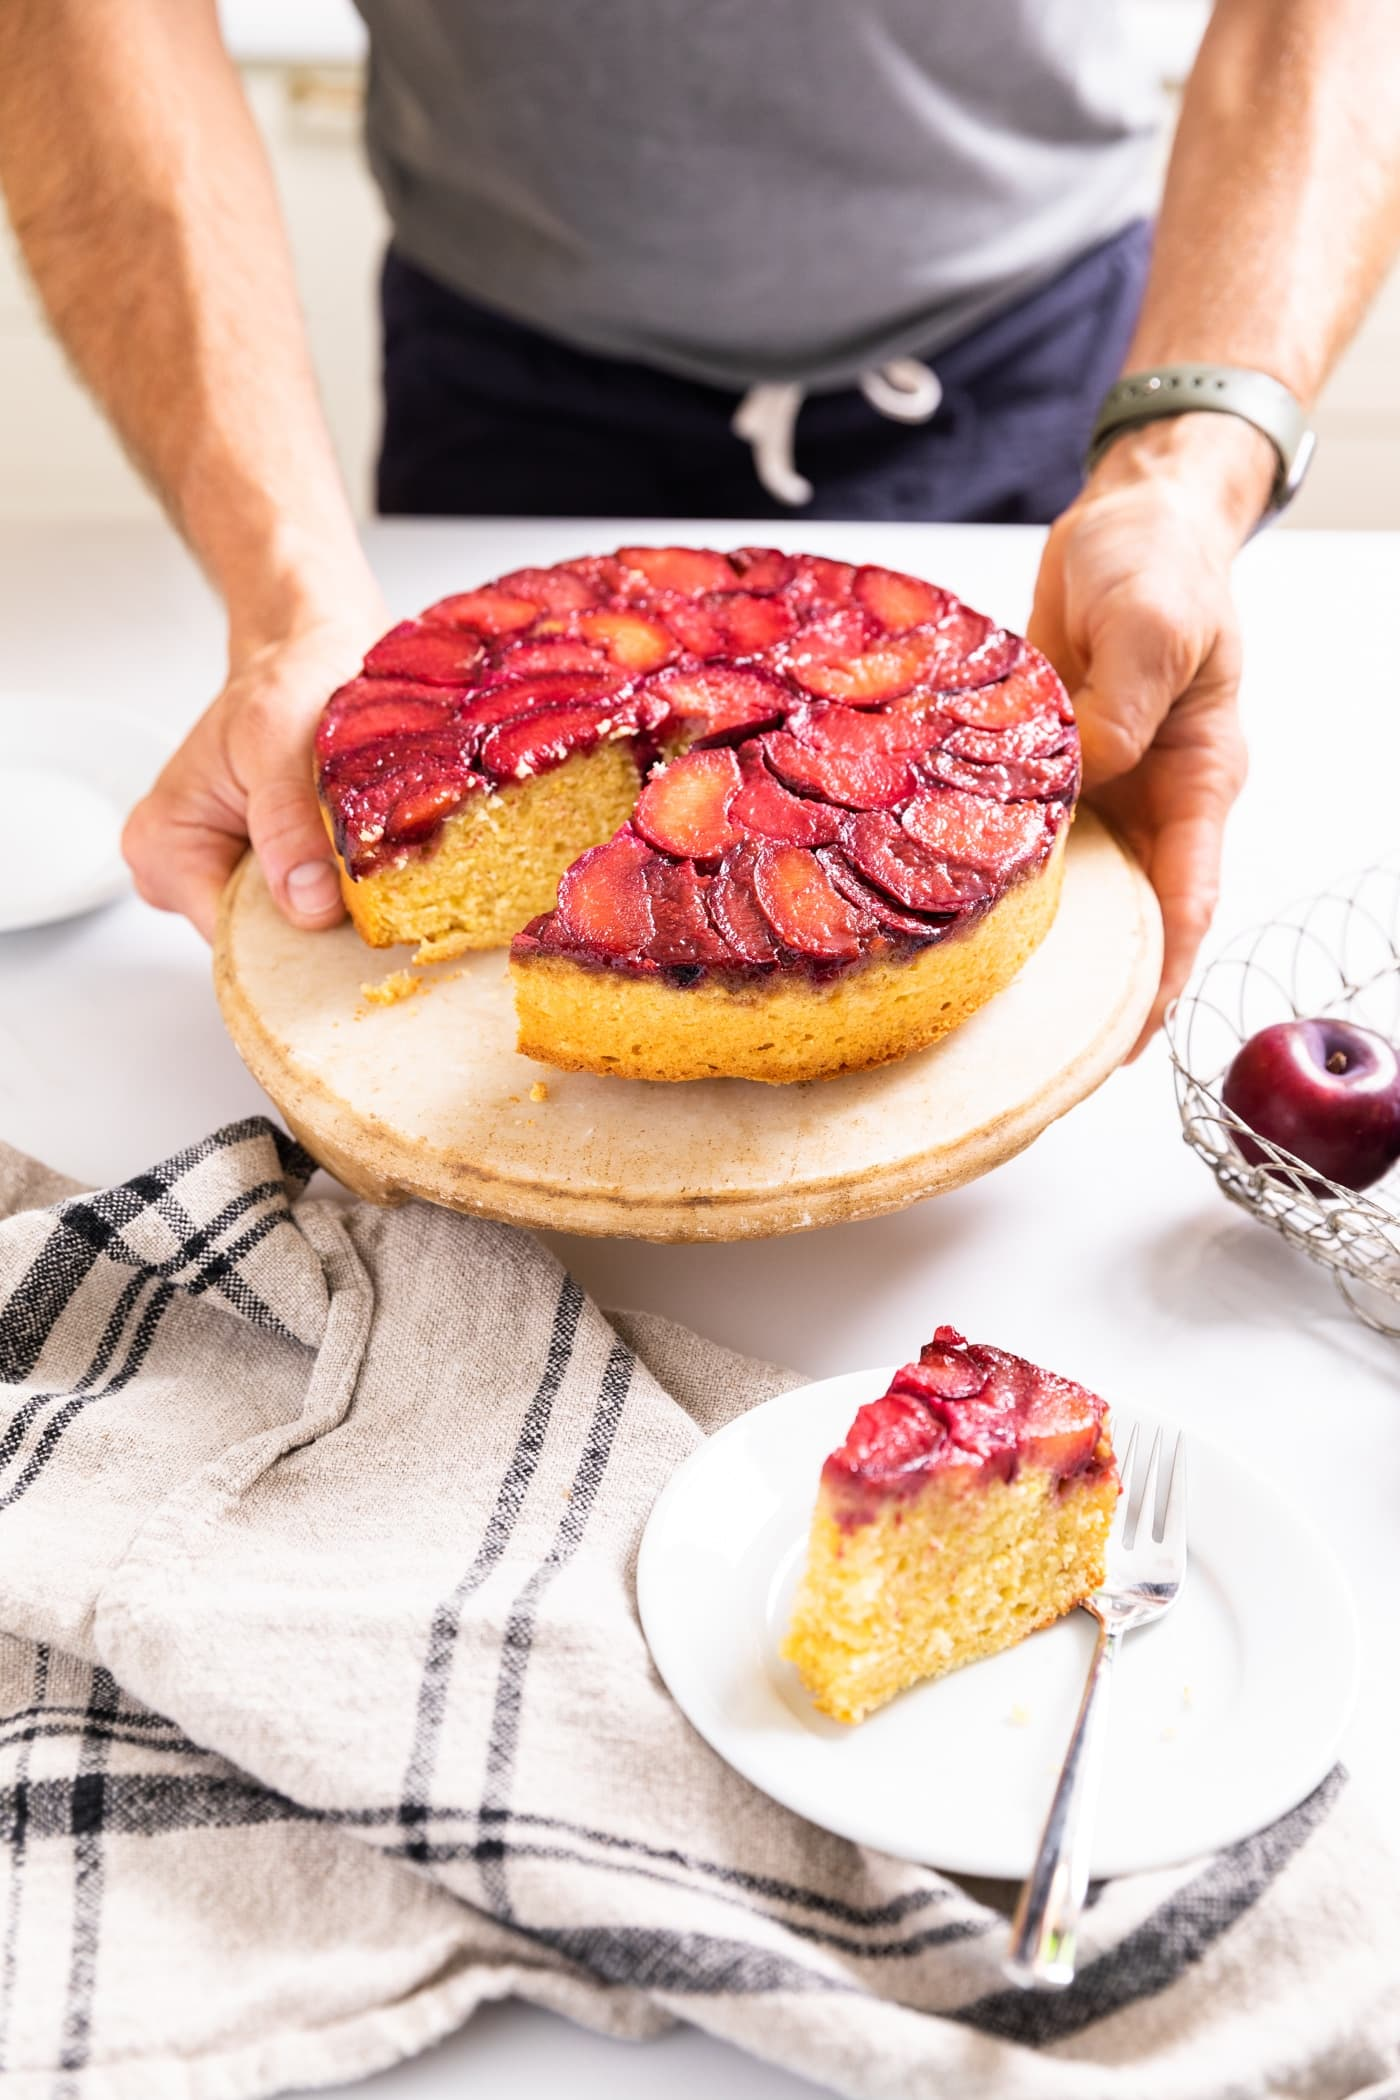 Two hands holding cake plate with cornmeal cake topped with slices of plums with slice cut out and sitting on white plate in front